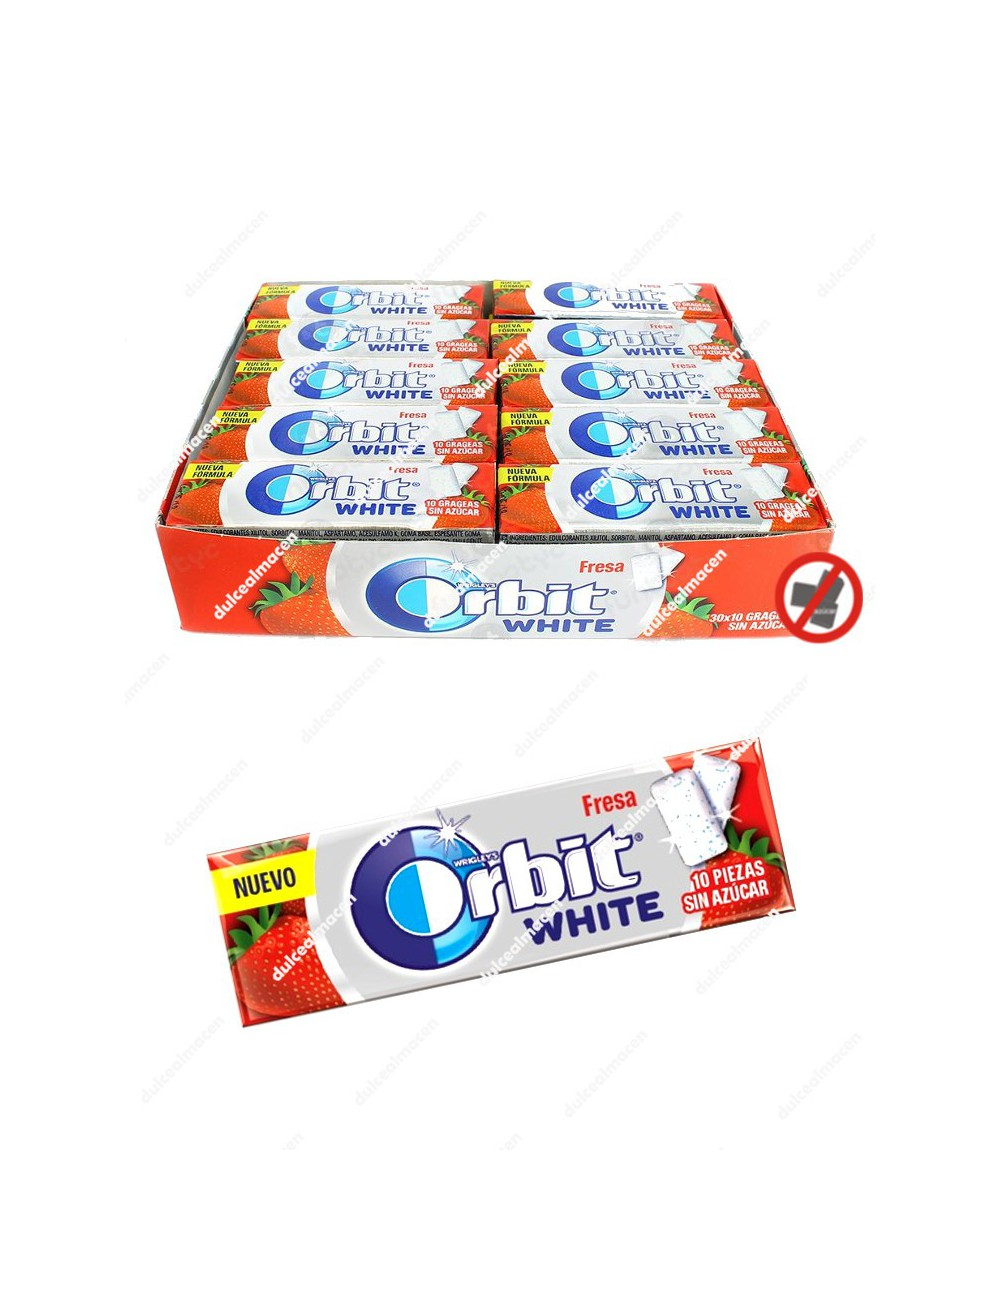 Orbit white fresa